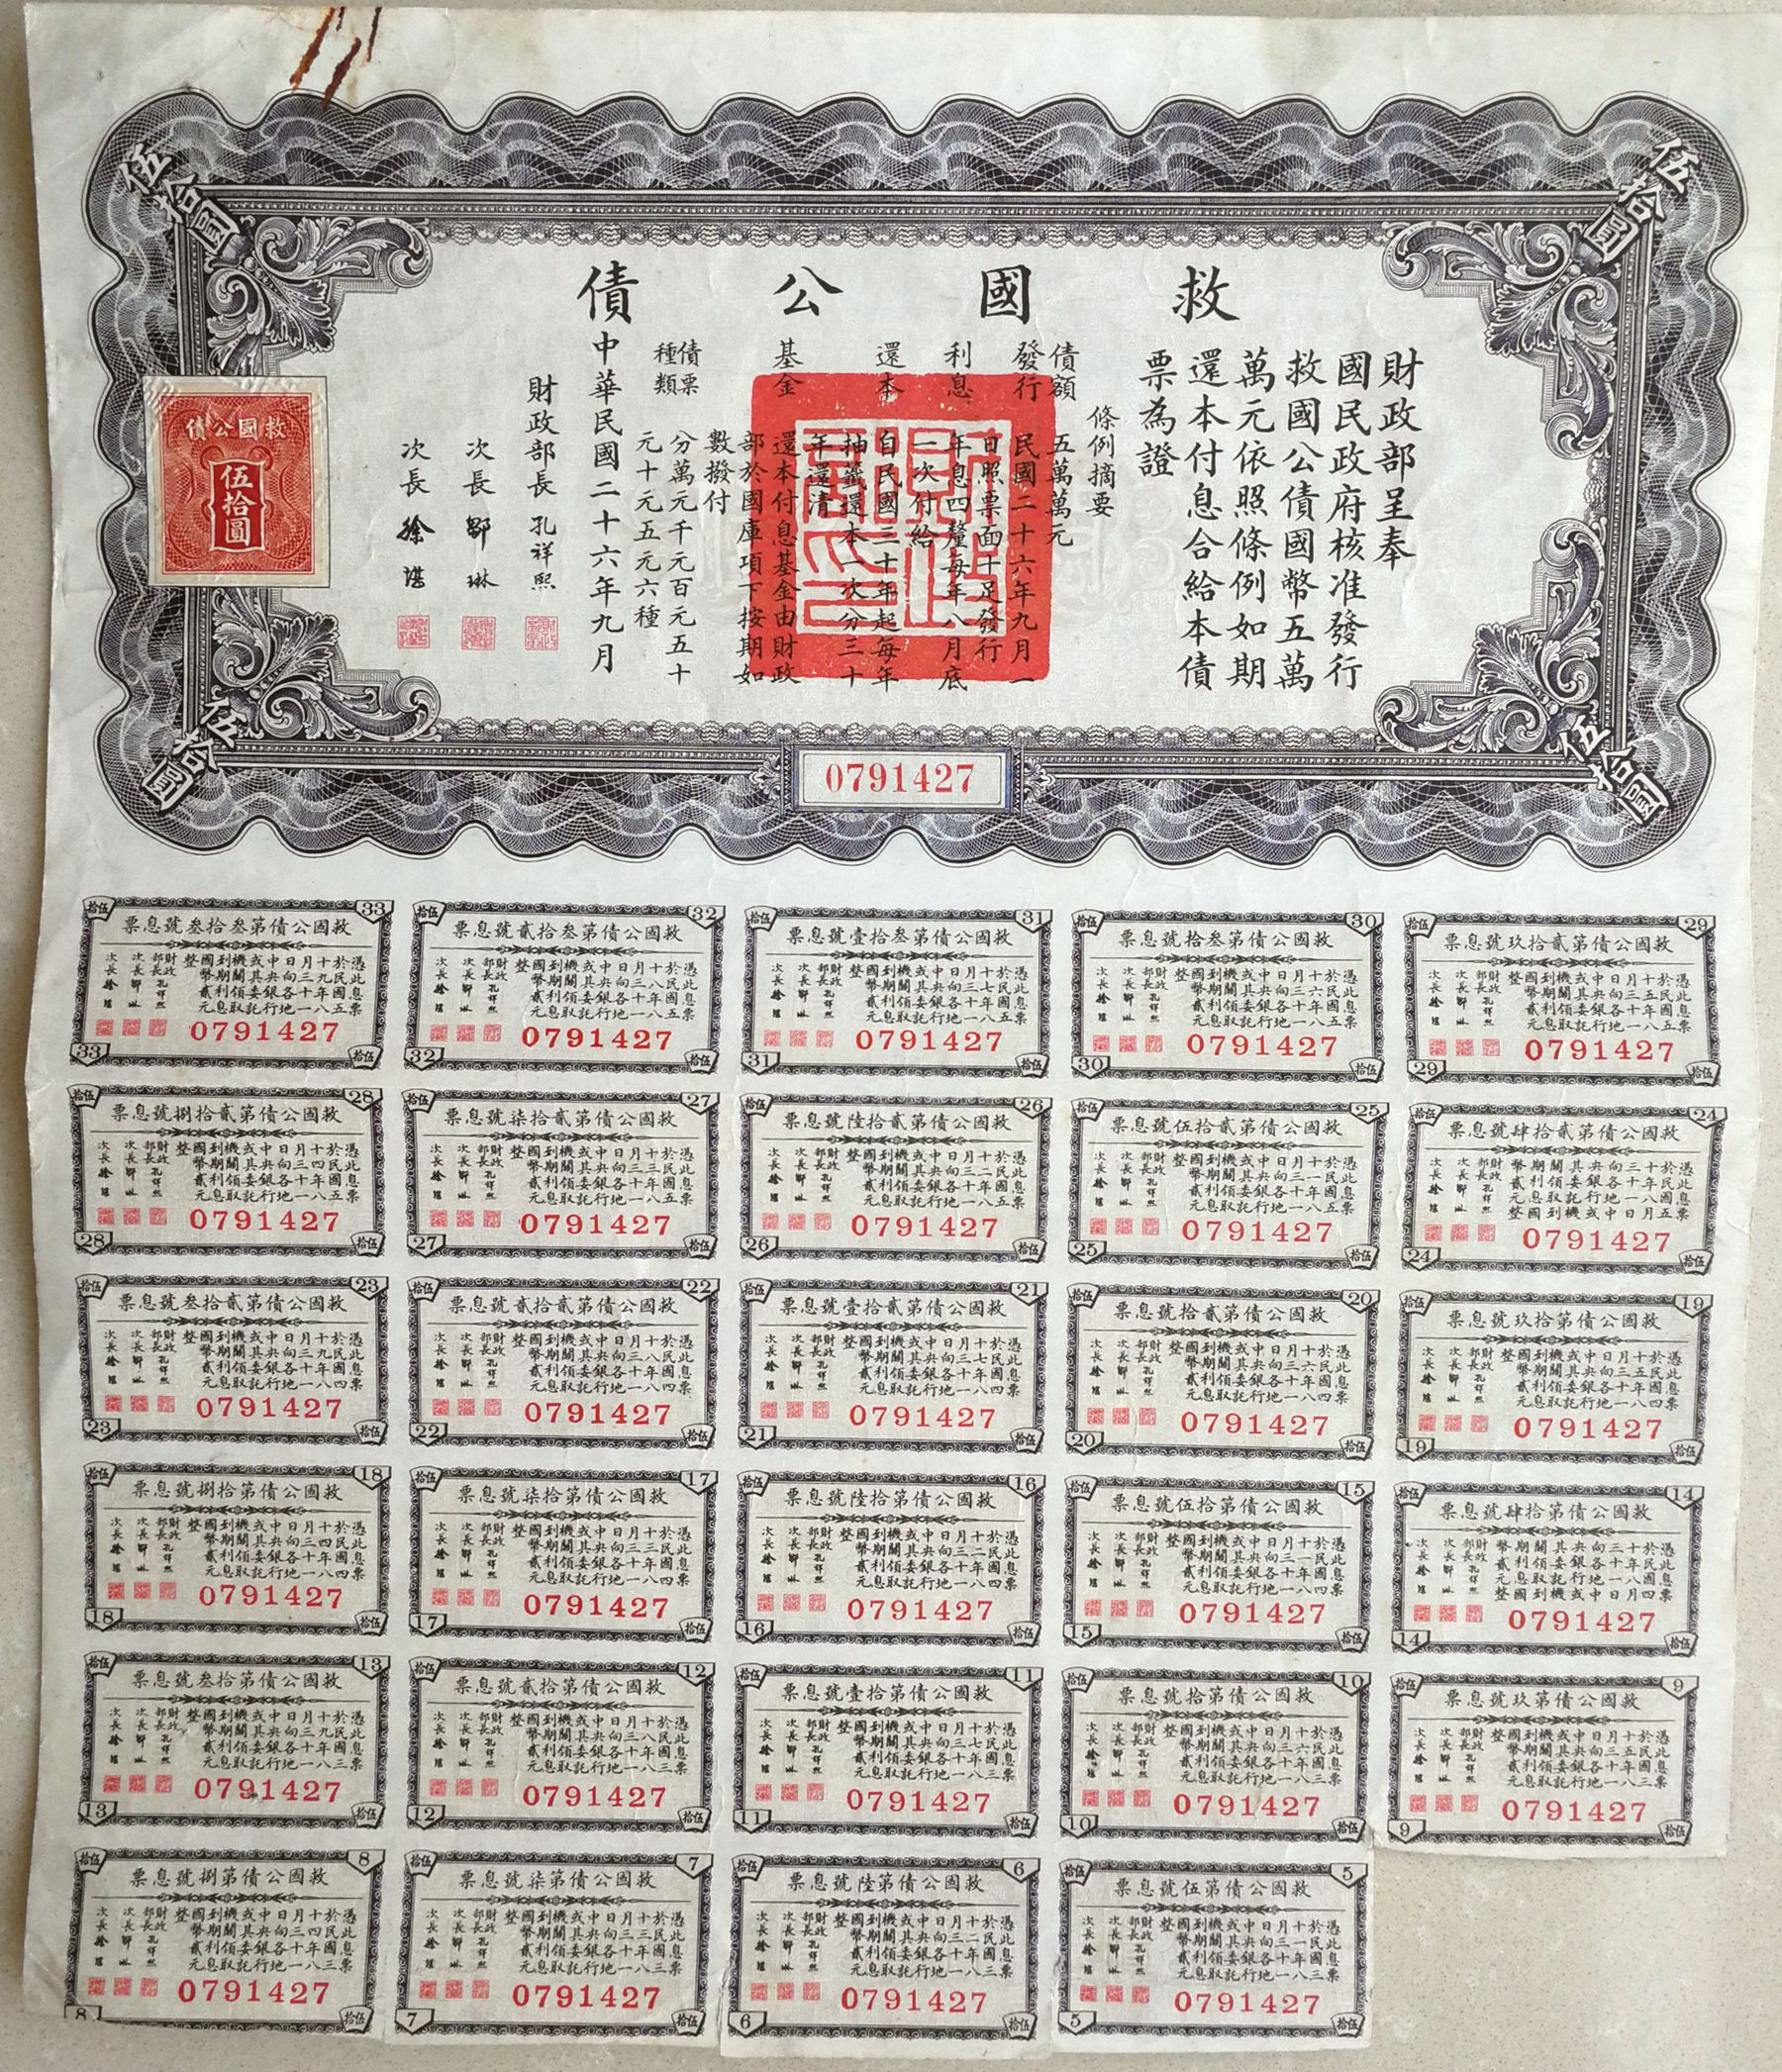 B2012, Liberty Bond of China, 50 Dollars Loan, 1937 (Sold Out)